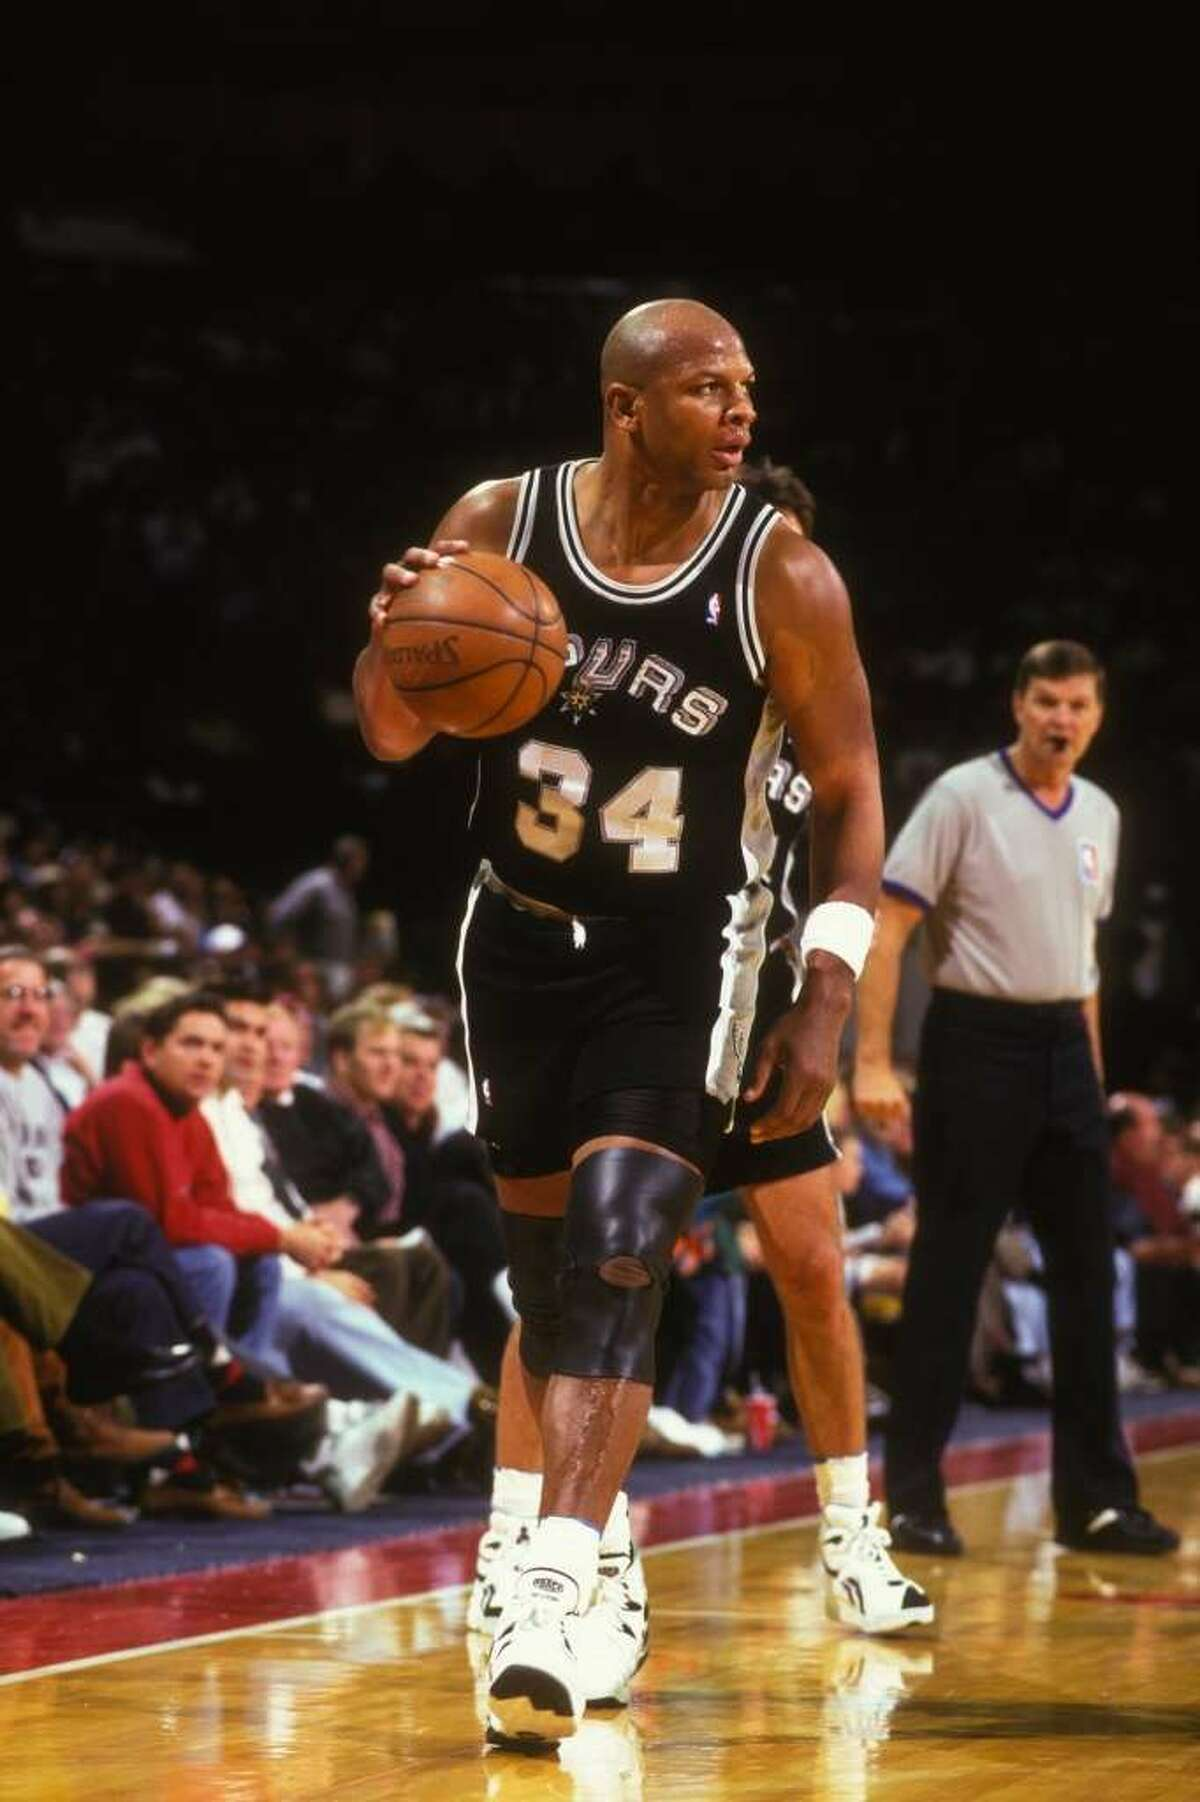 Cummings tore his anterior cruciate ligament in his knee during a pickup game in the 1992-93 off season and would miss 74 games that season.